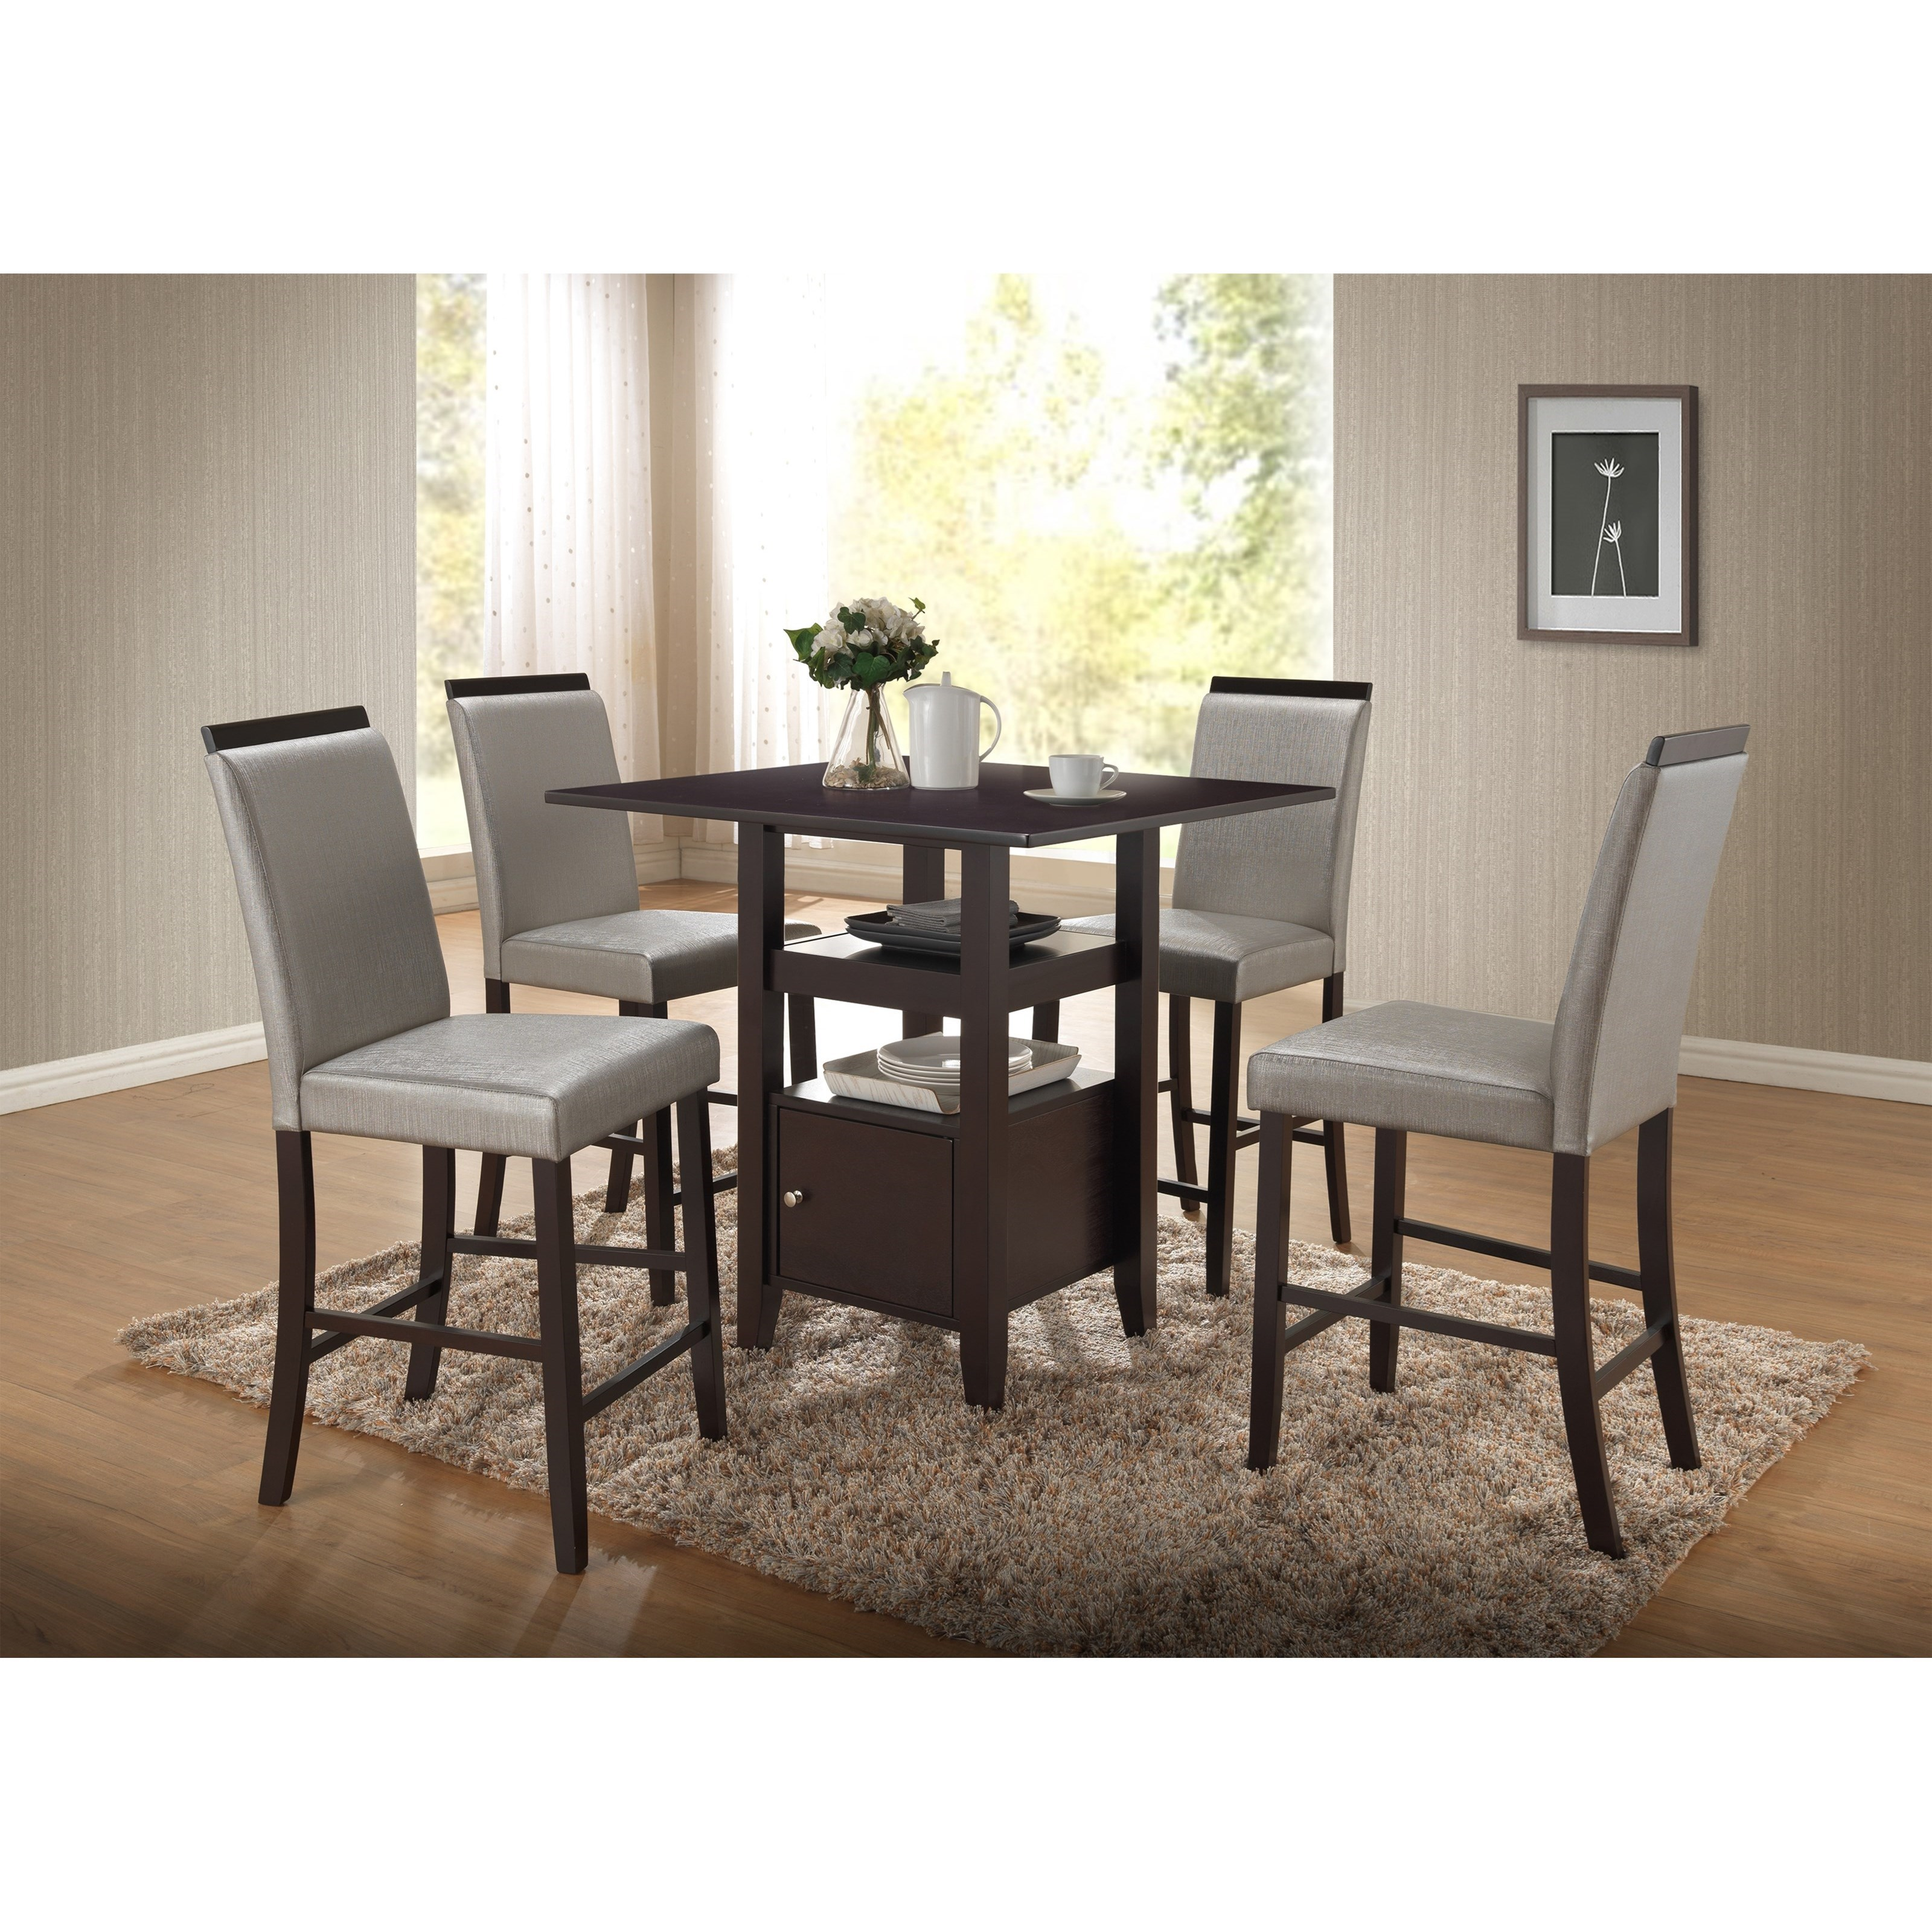 New Classic Natasha 5 Piece Wood Counter Table Set - Item Number: D3972-12W+4x23GR